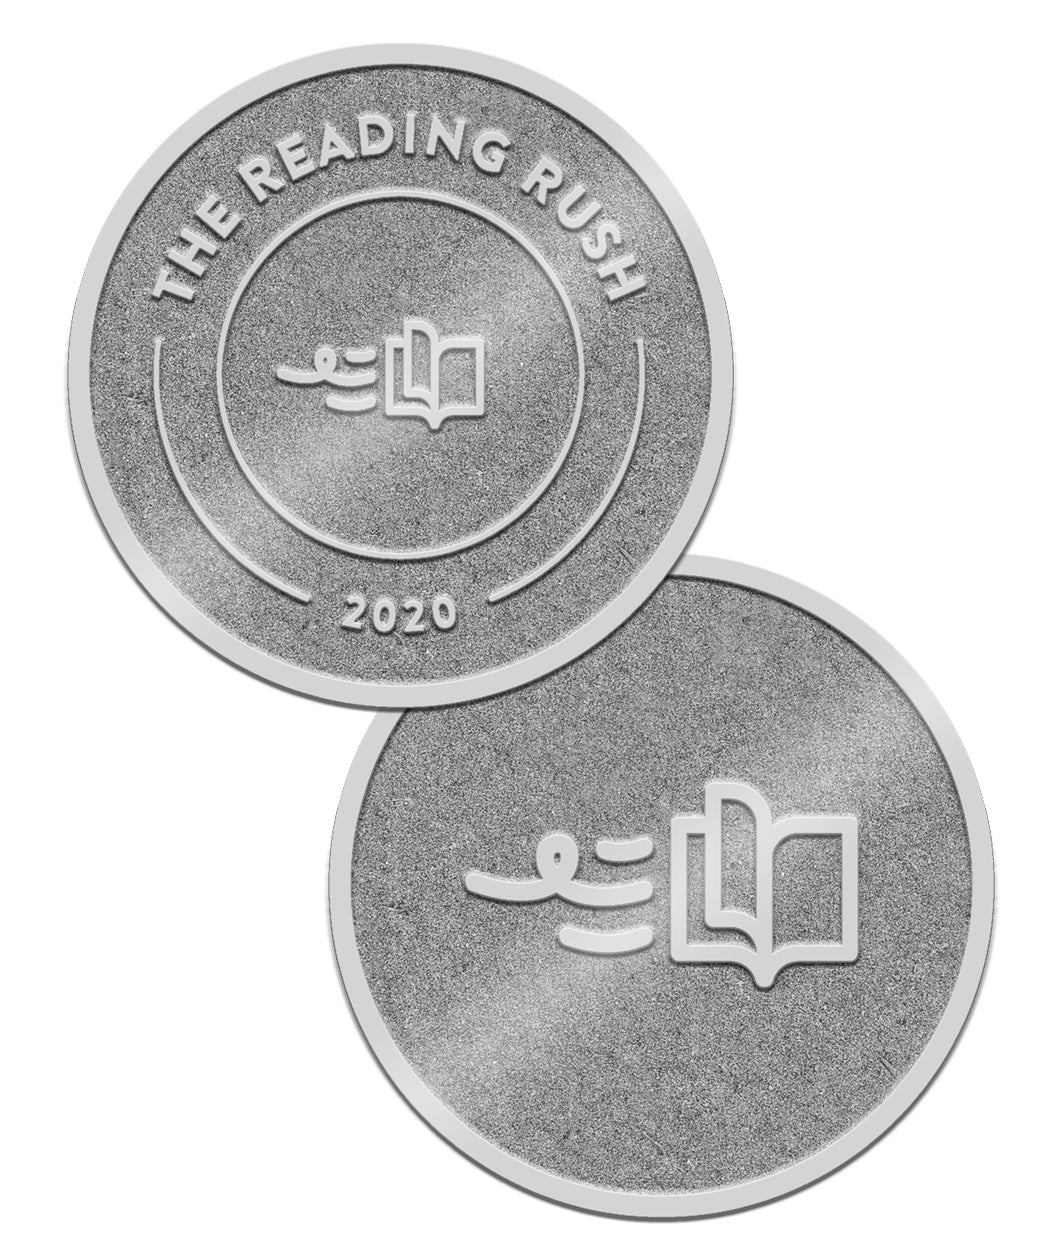 Reading Rush 2020 Coin